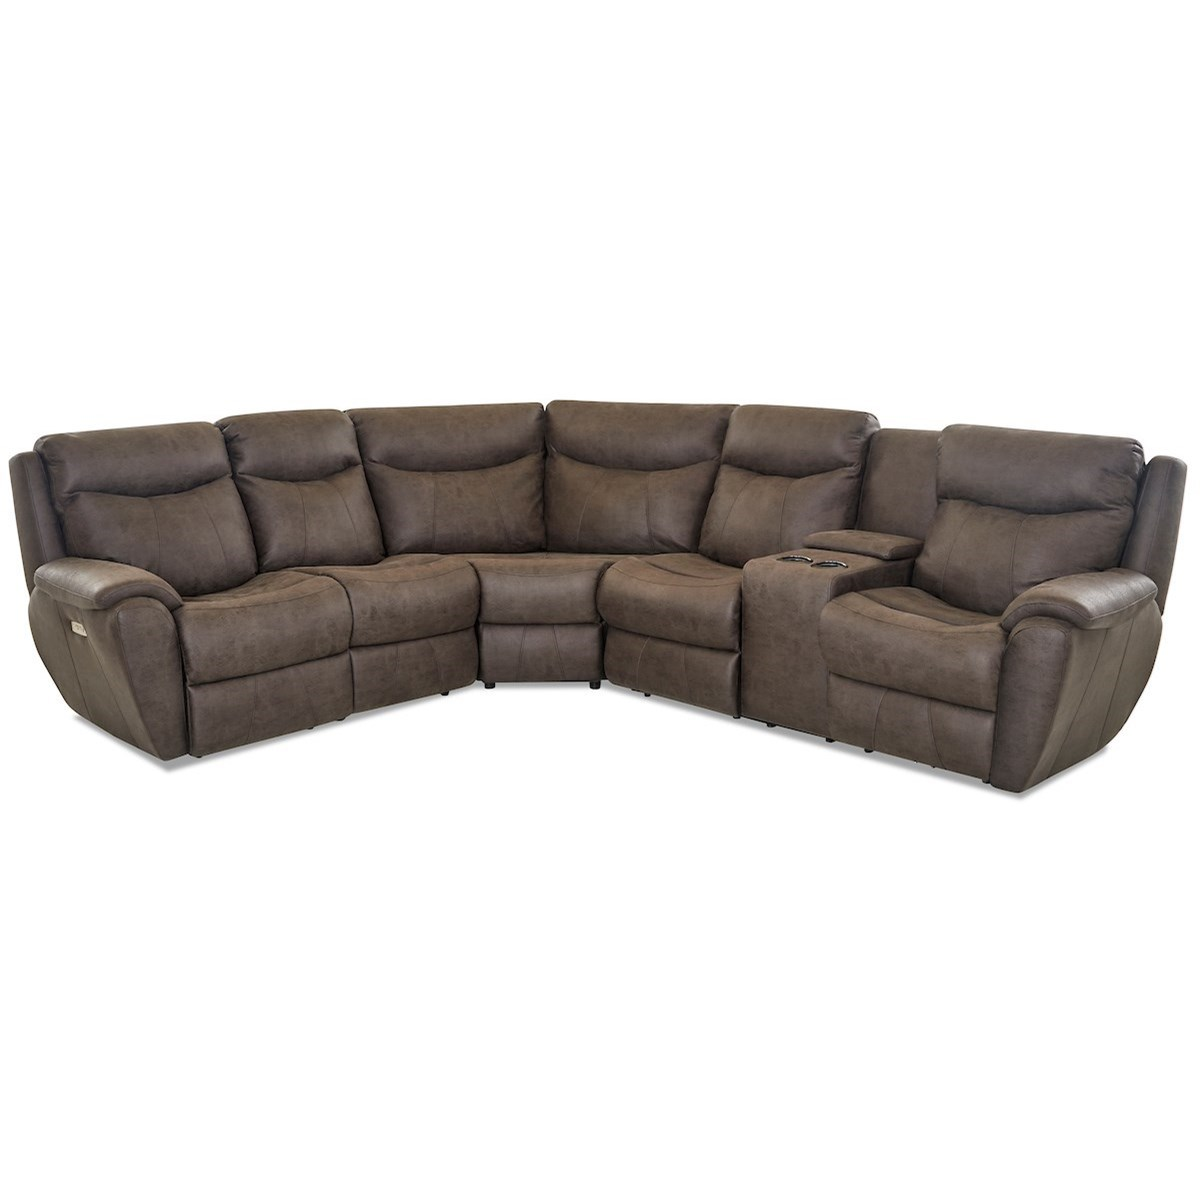 Proximo Pwr Recline Sofa w/ RAF Cnsl & Pwr Head/Lumb by Klaussner at Northeast Factory Direct